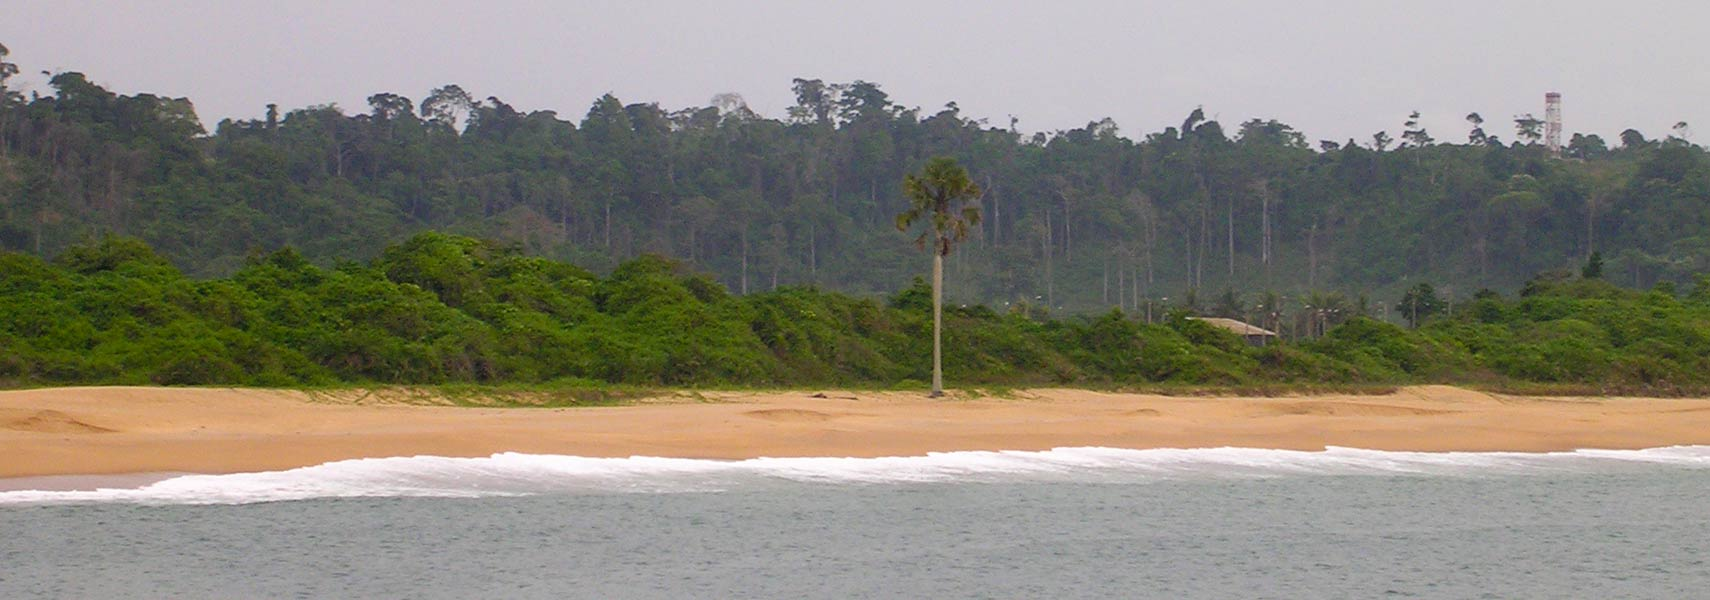 Beach in San Pédro, Ivory Coast